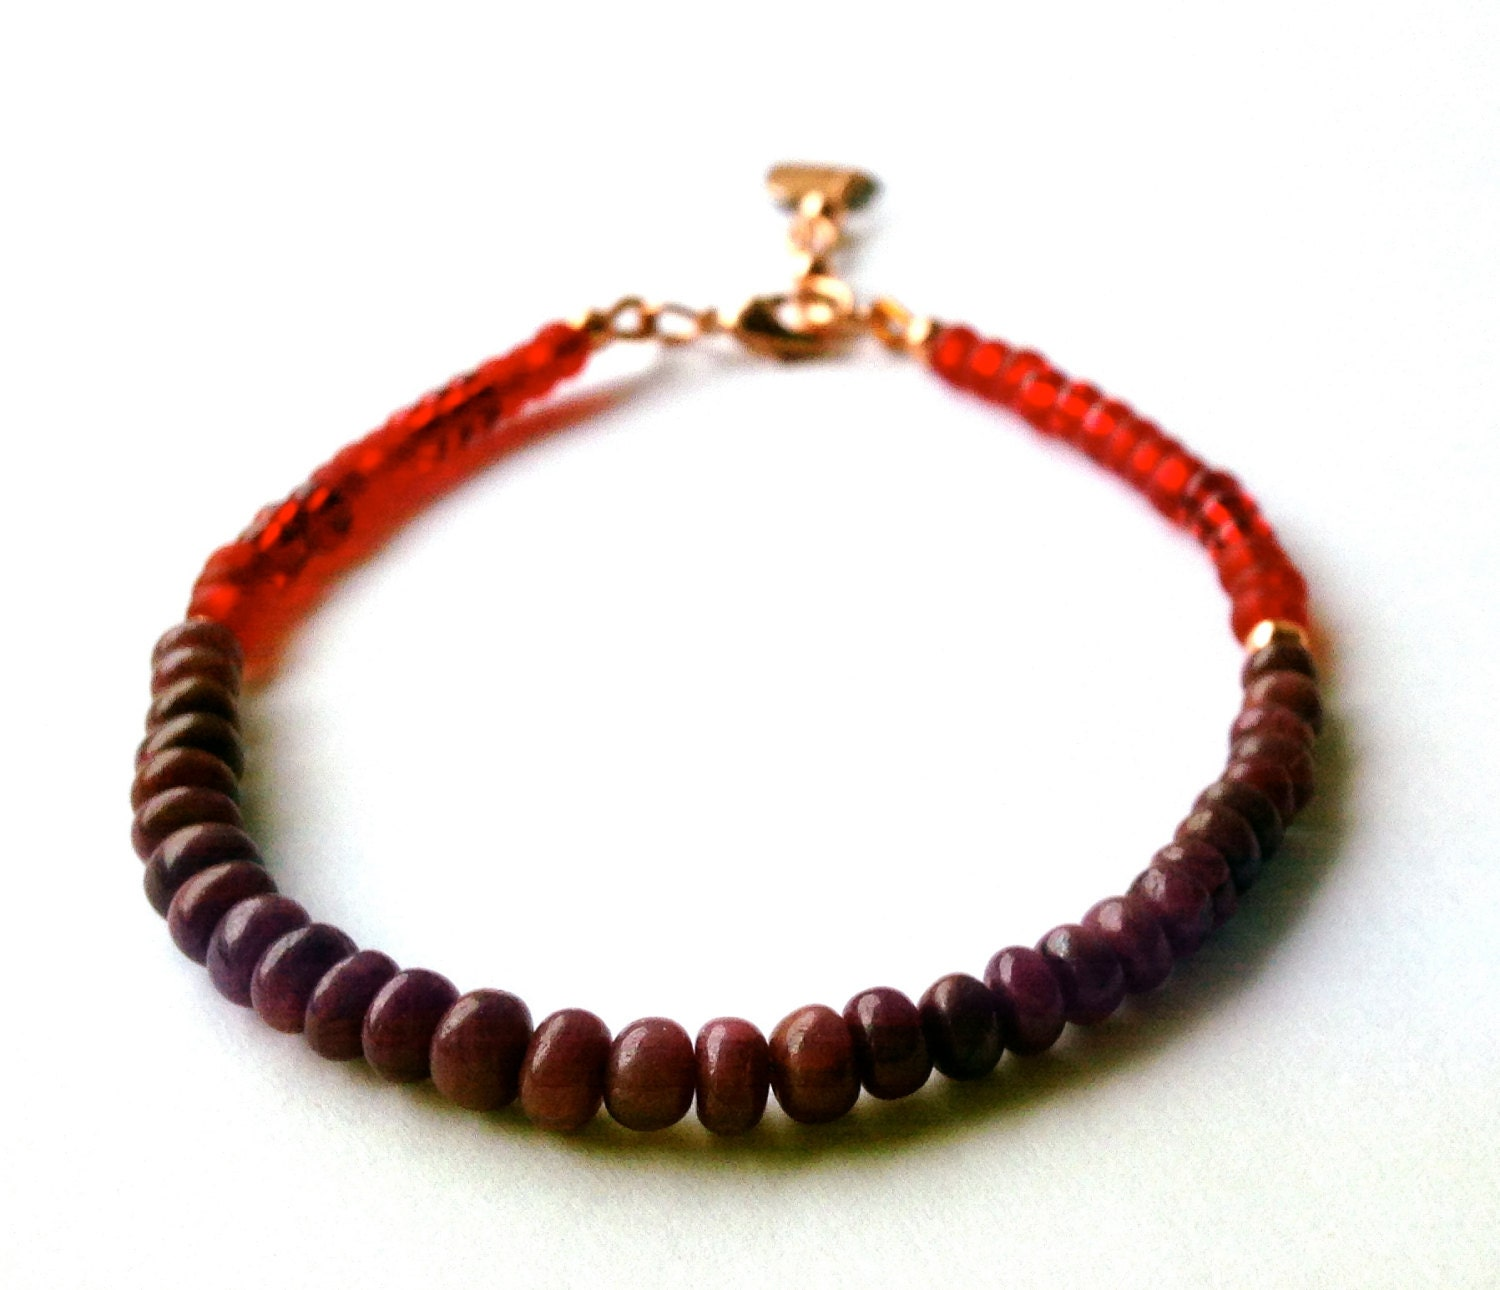 Red Ruby Beads: Red Ruby Bracelet With Seed Beads And A Copper Heart Charm